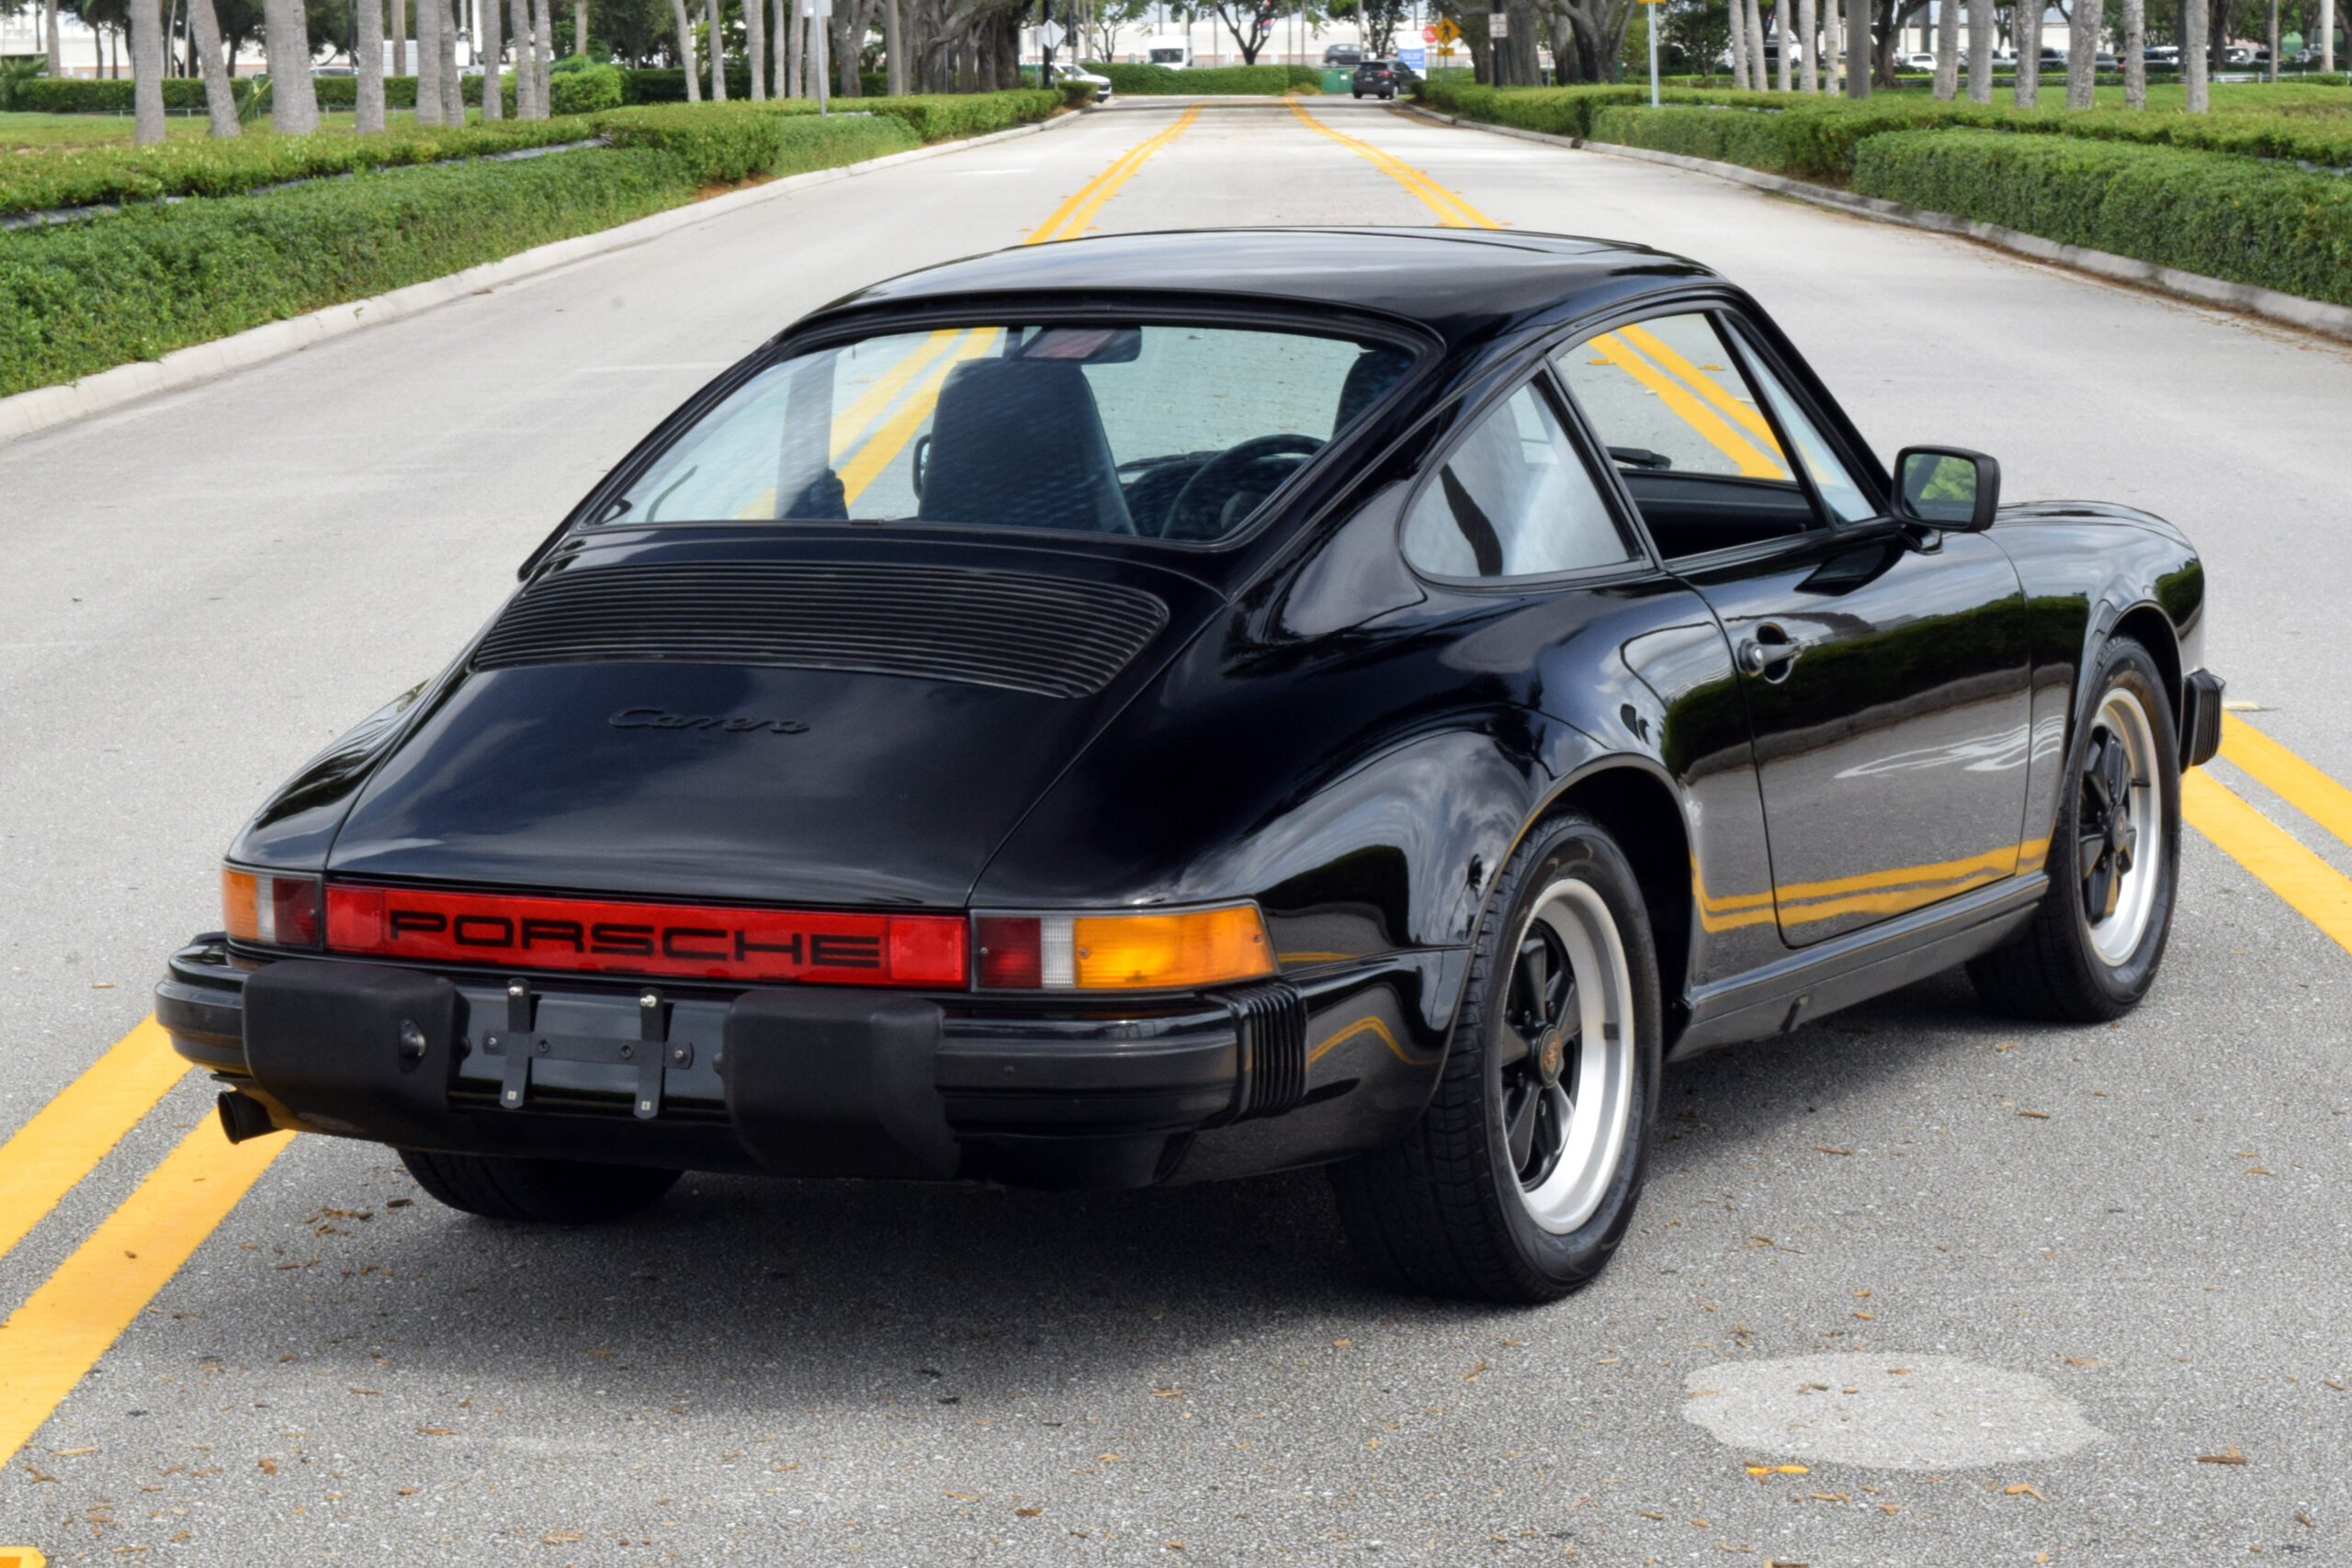 1986 911 Carrera, same owner for almost 20 years, amazing condition